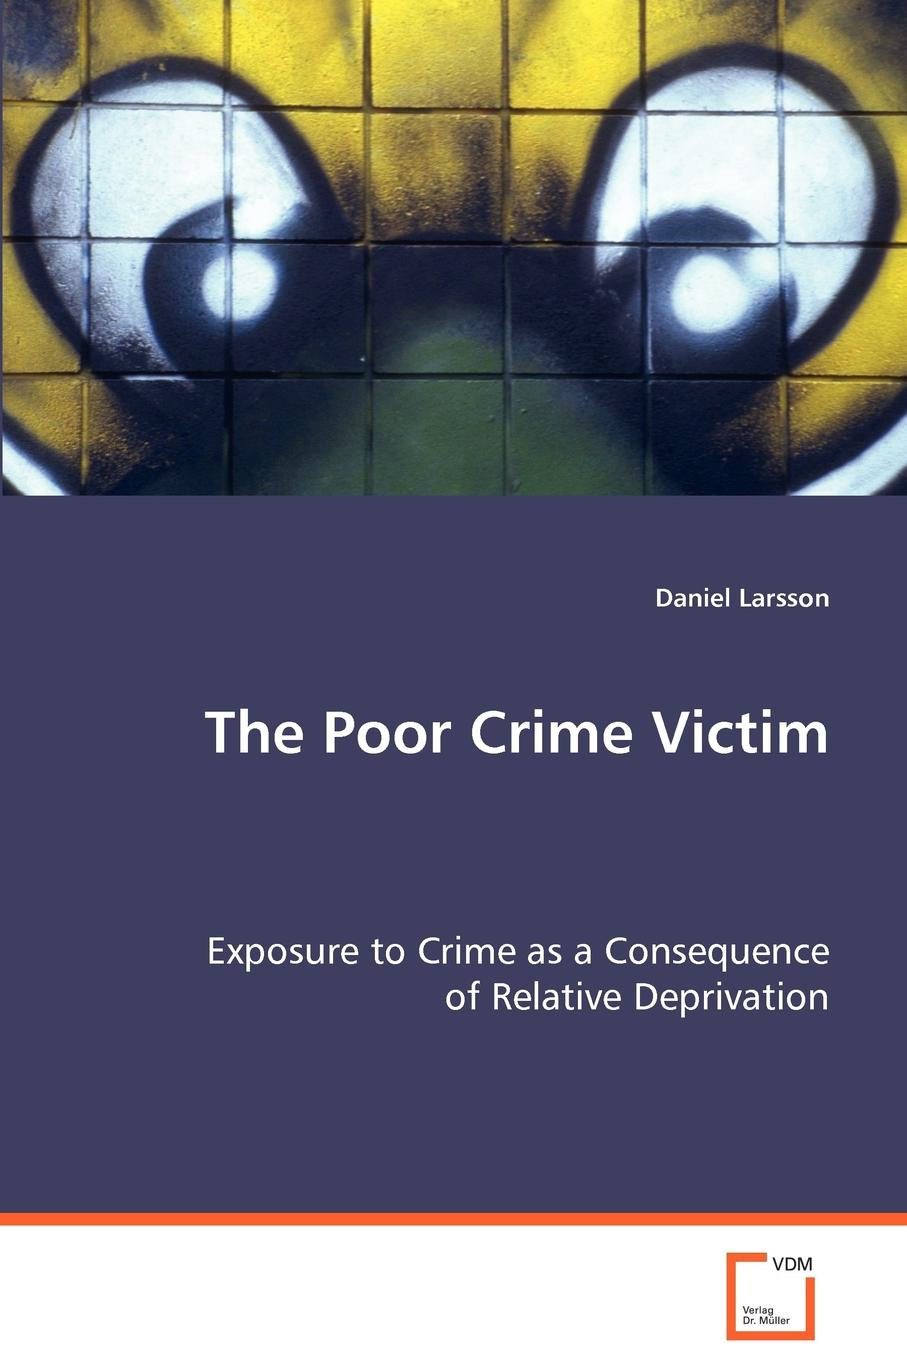 Daniel Larsson The Poor Crime Victim katarzyna szydlowska what are the major problems facing vaxess technologies